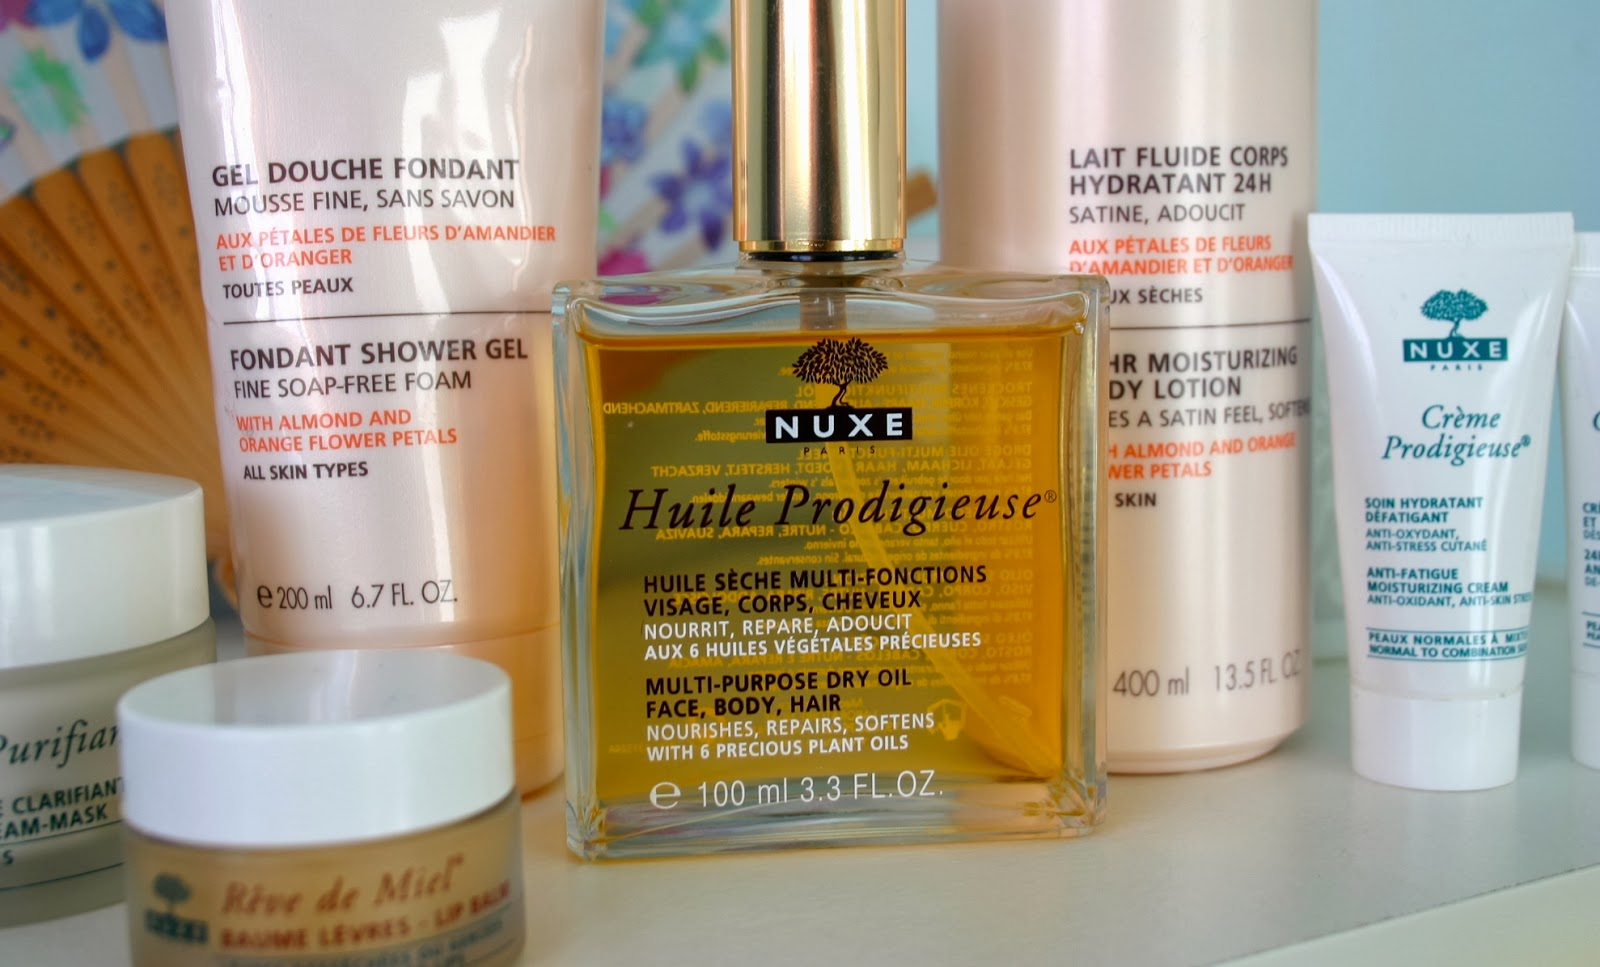 Nuxe Huile Prodigieuse sat amongst other nuxe spring pamper products